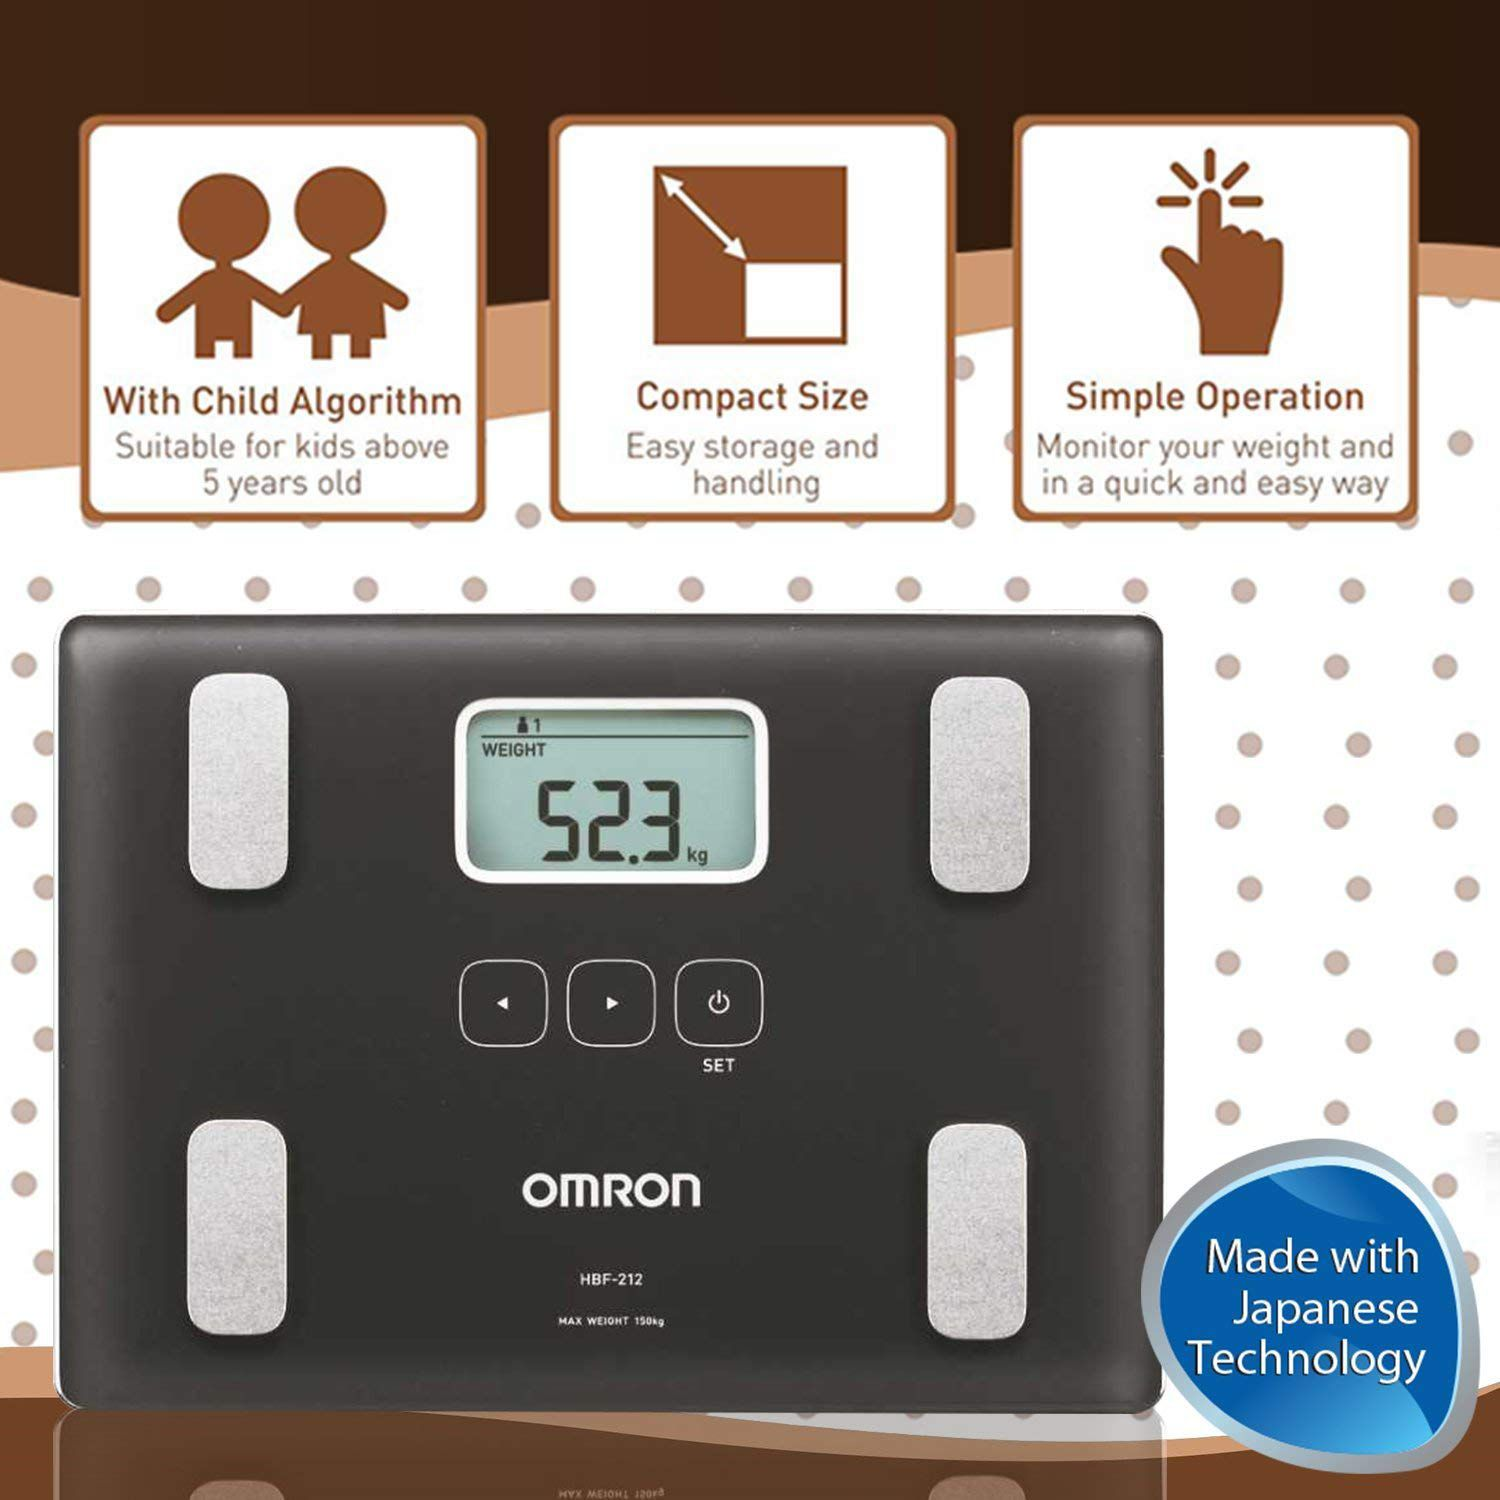 Omron HBF 212 Digital Full Body Composition Monitor With 4 User & Guest (Monitor Body Fat & Weight)